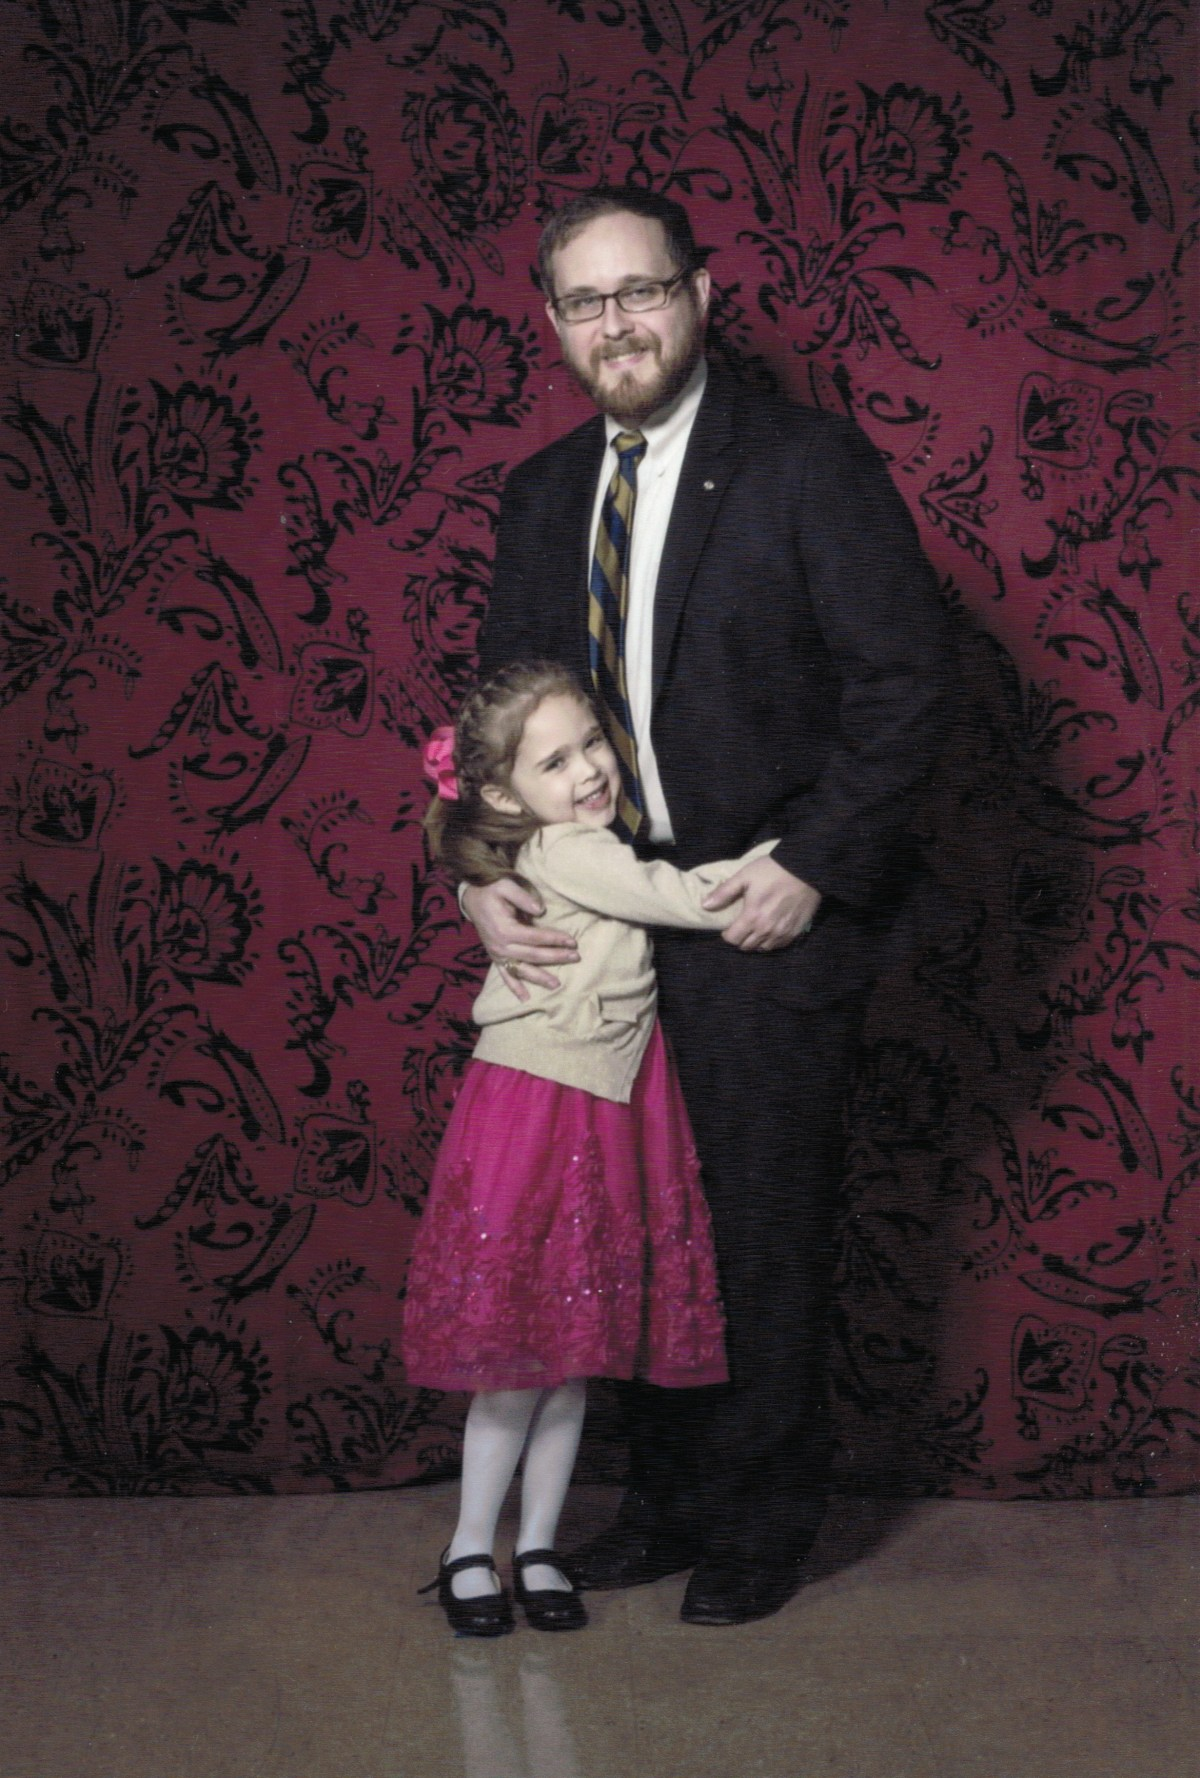 Picture of me with my oldest daughter.